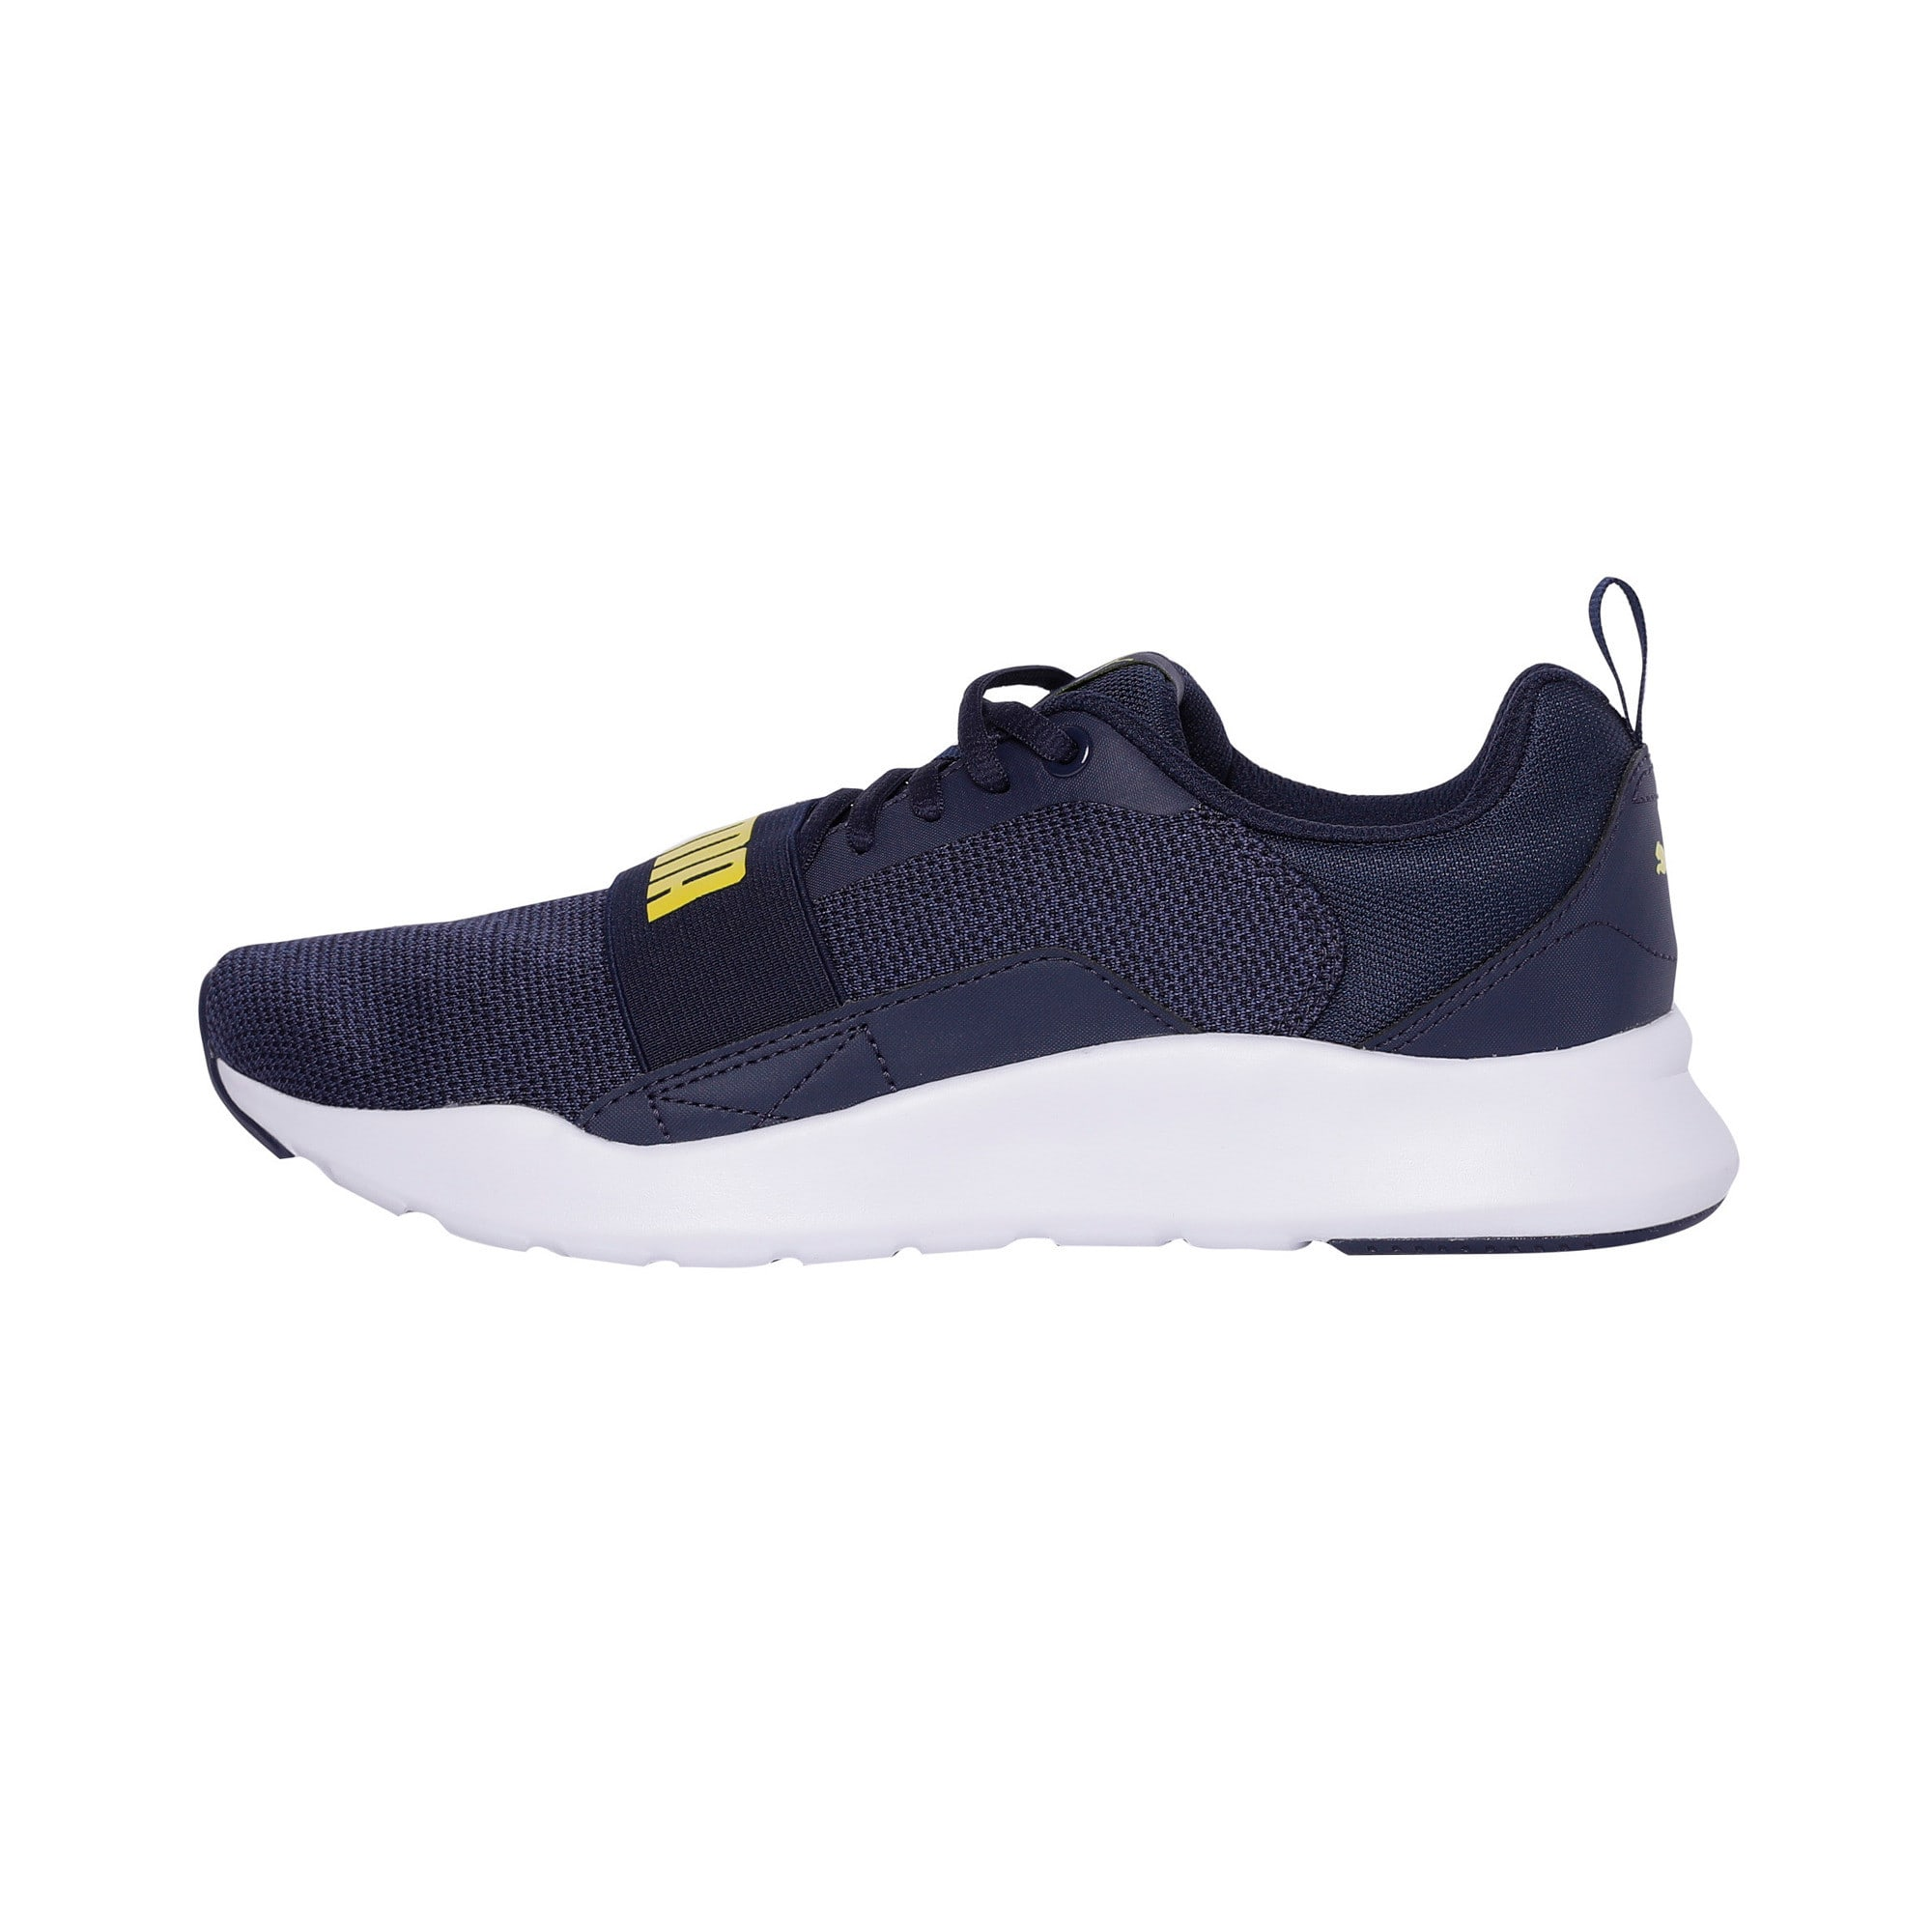 Thumbnail 1 of Wired Knit Trainers, Peacoat-Blazing Yellow, medium-IND